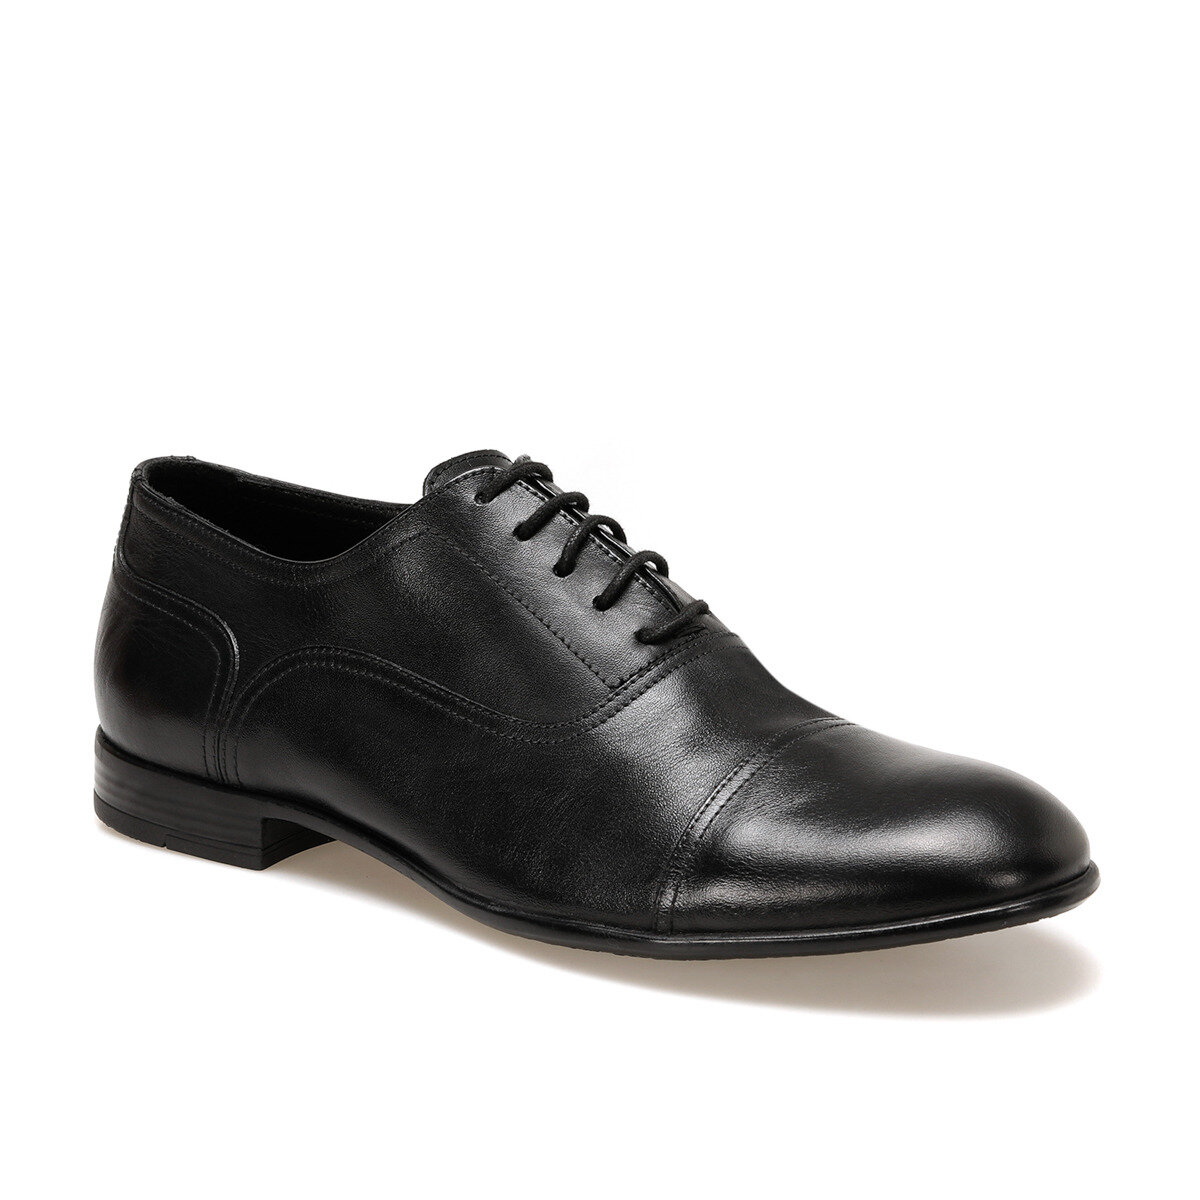 FLO 483 Black Male Maskaret Shoes Garamond